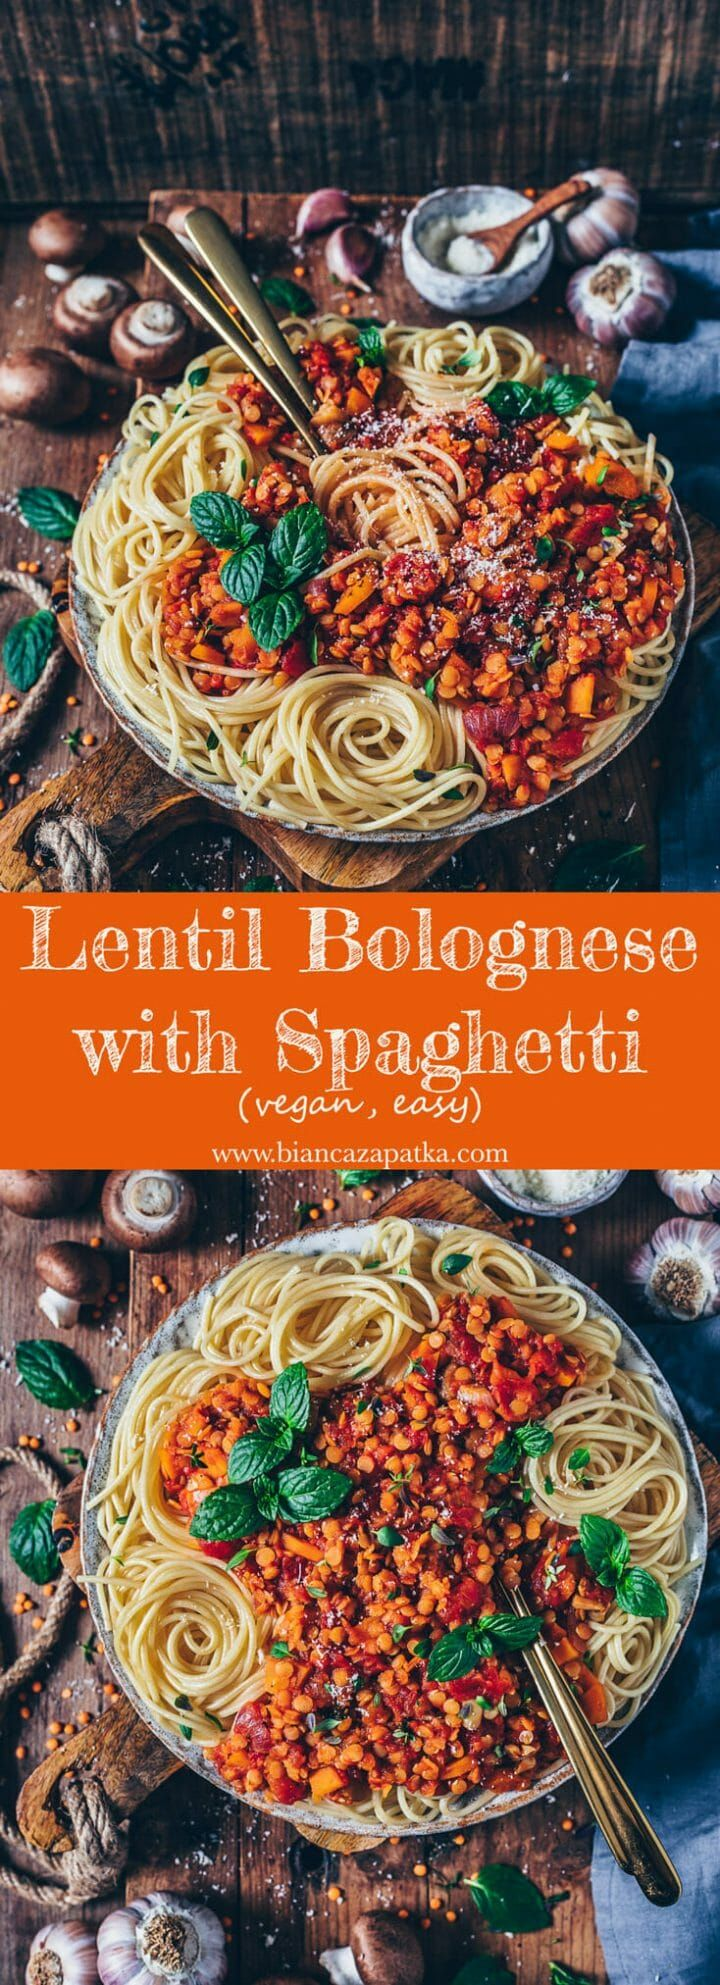 Lentil Bolognese with Spaghetti (vegan, easy